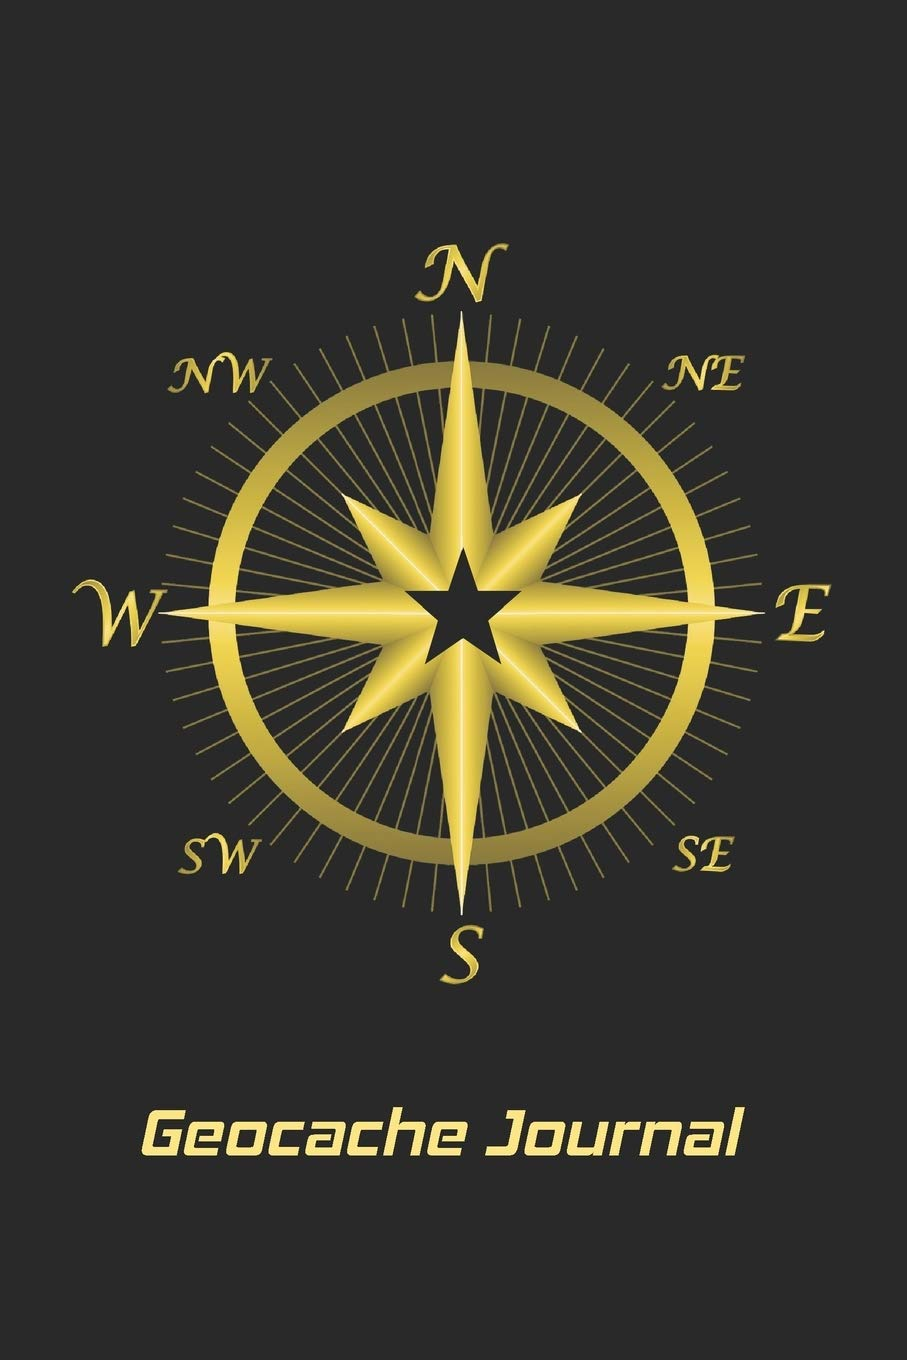 Personal Book for keeping track of important GeoCache Treasure Information-Black//Gold Compass Geocache Journal